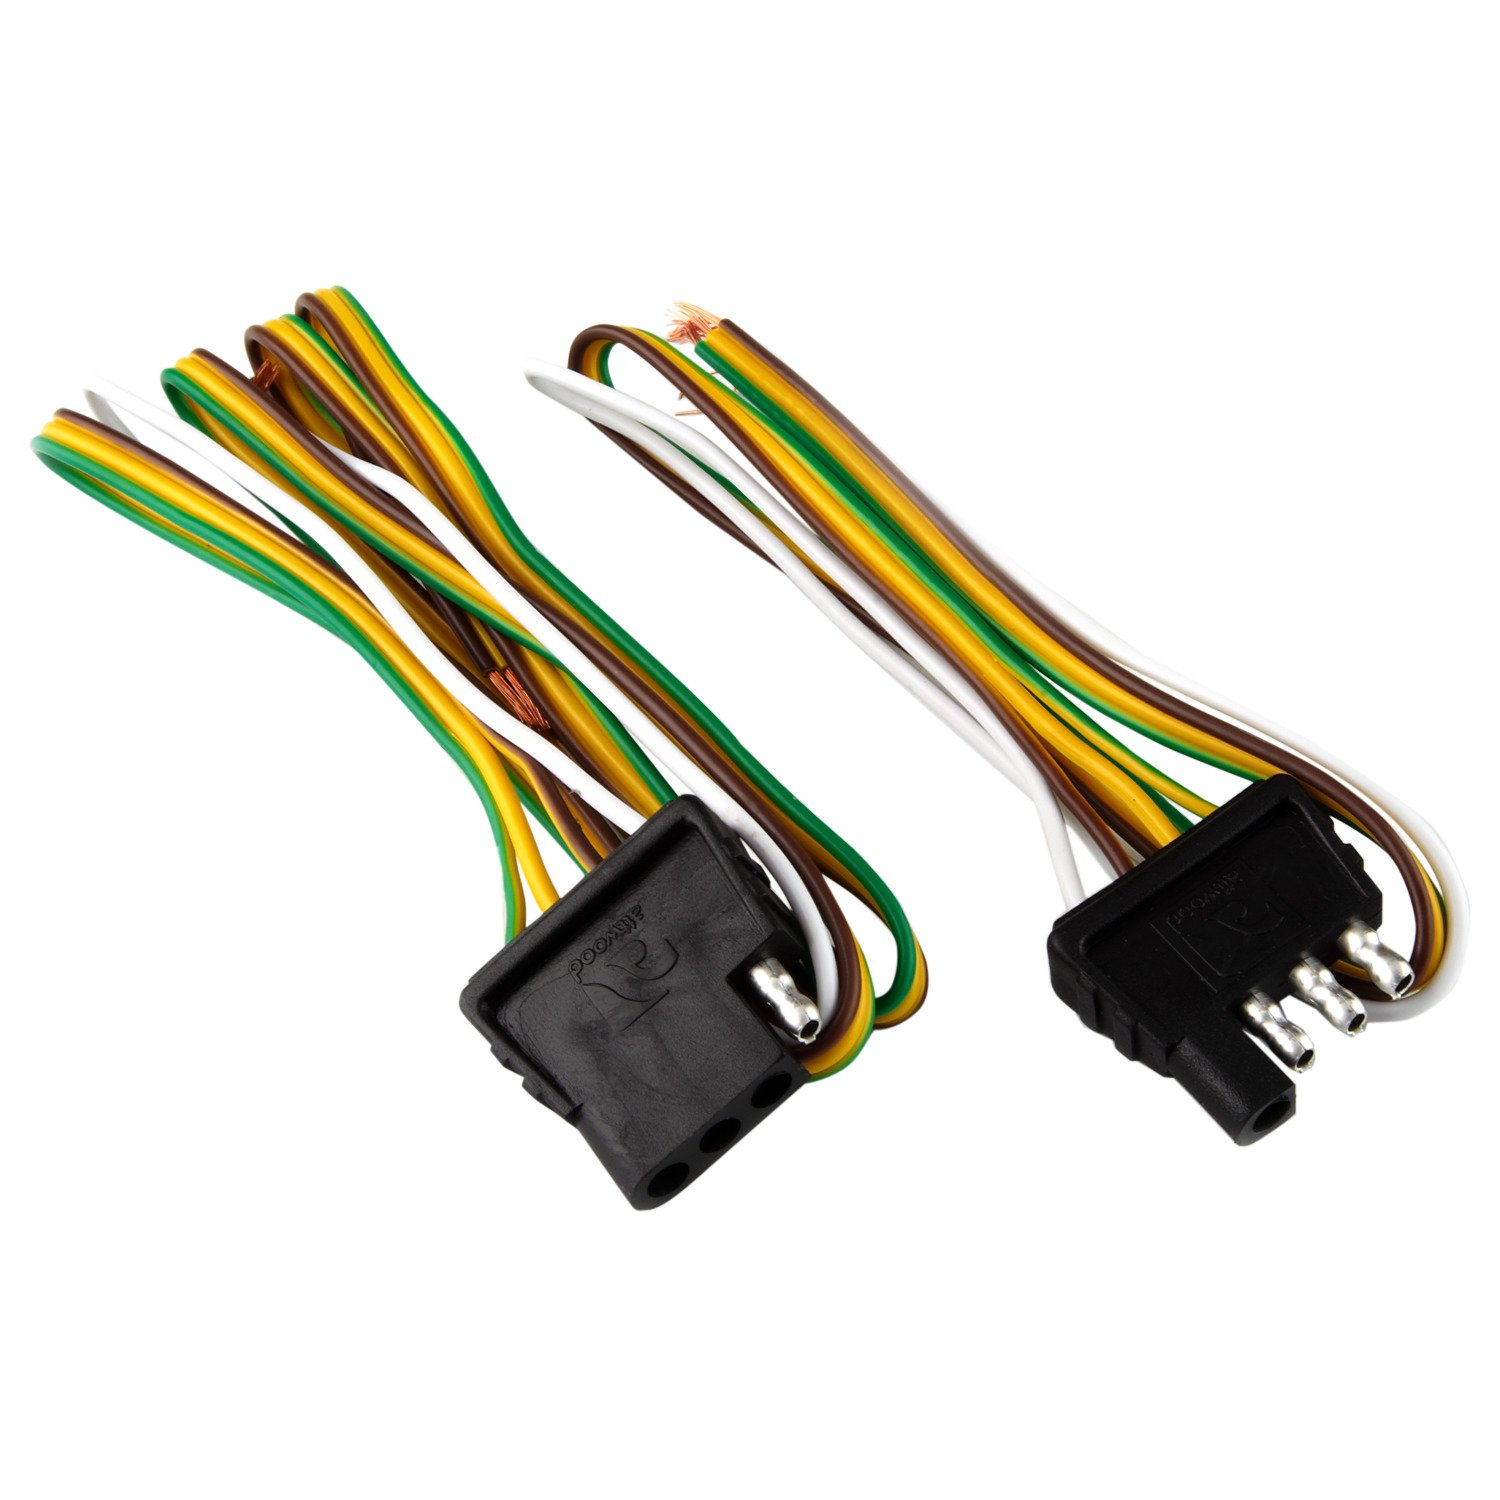 attwood 4 way flat wiring harness kit for vehicles and trailers rh academy com trailer wiring kit installation trailer wiring kit amazon